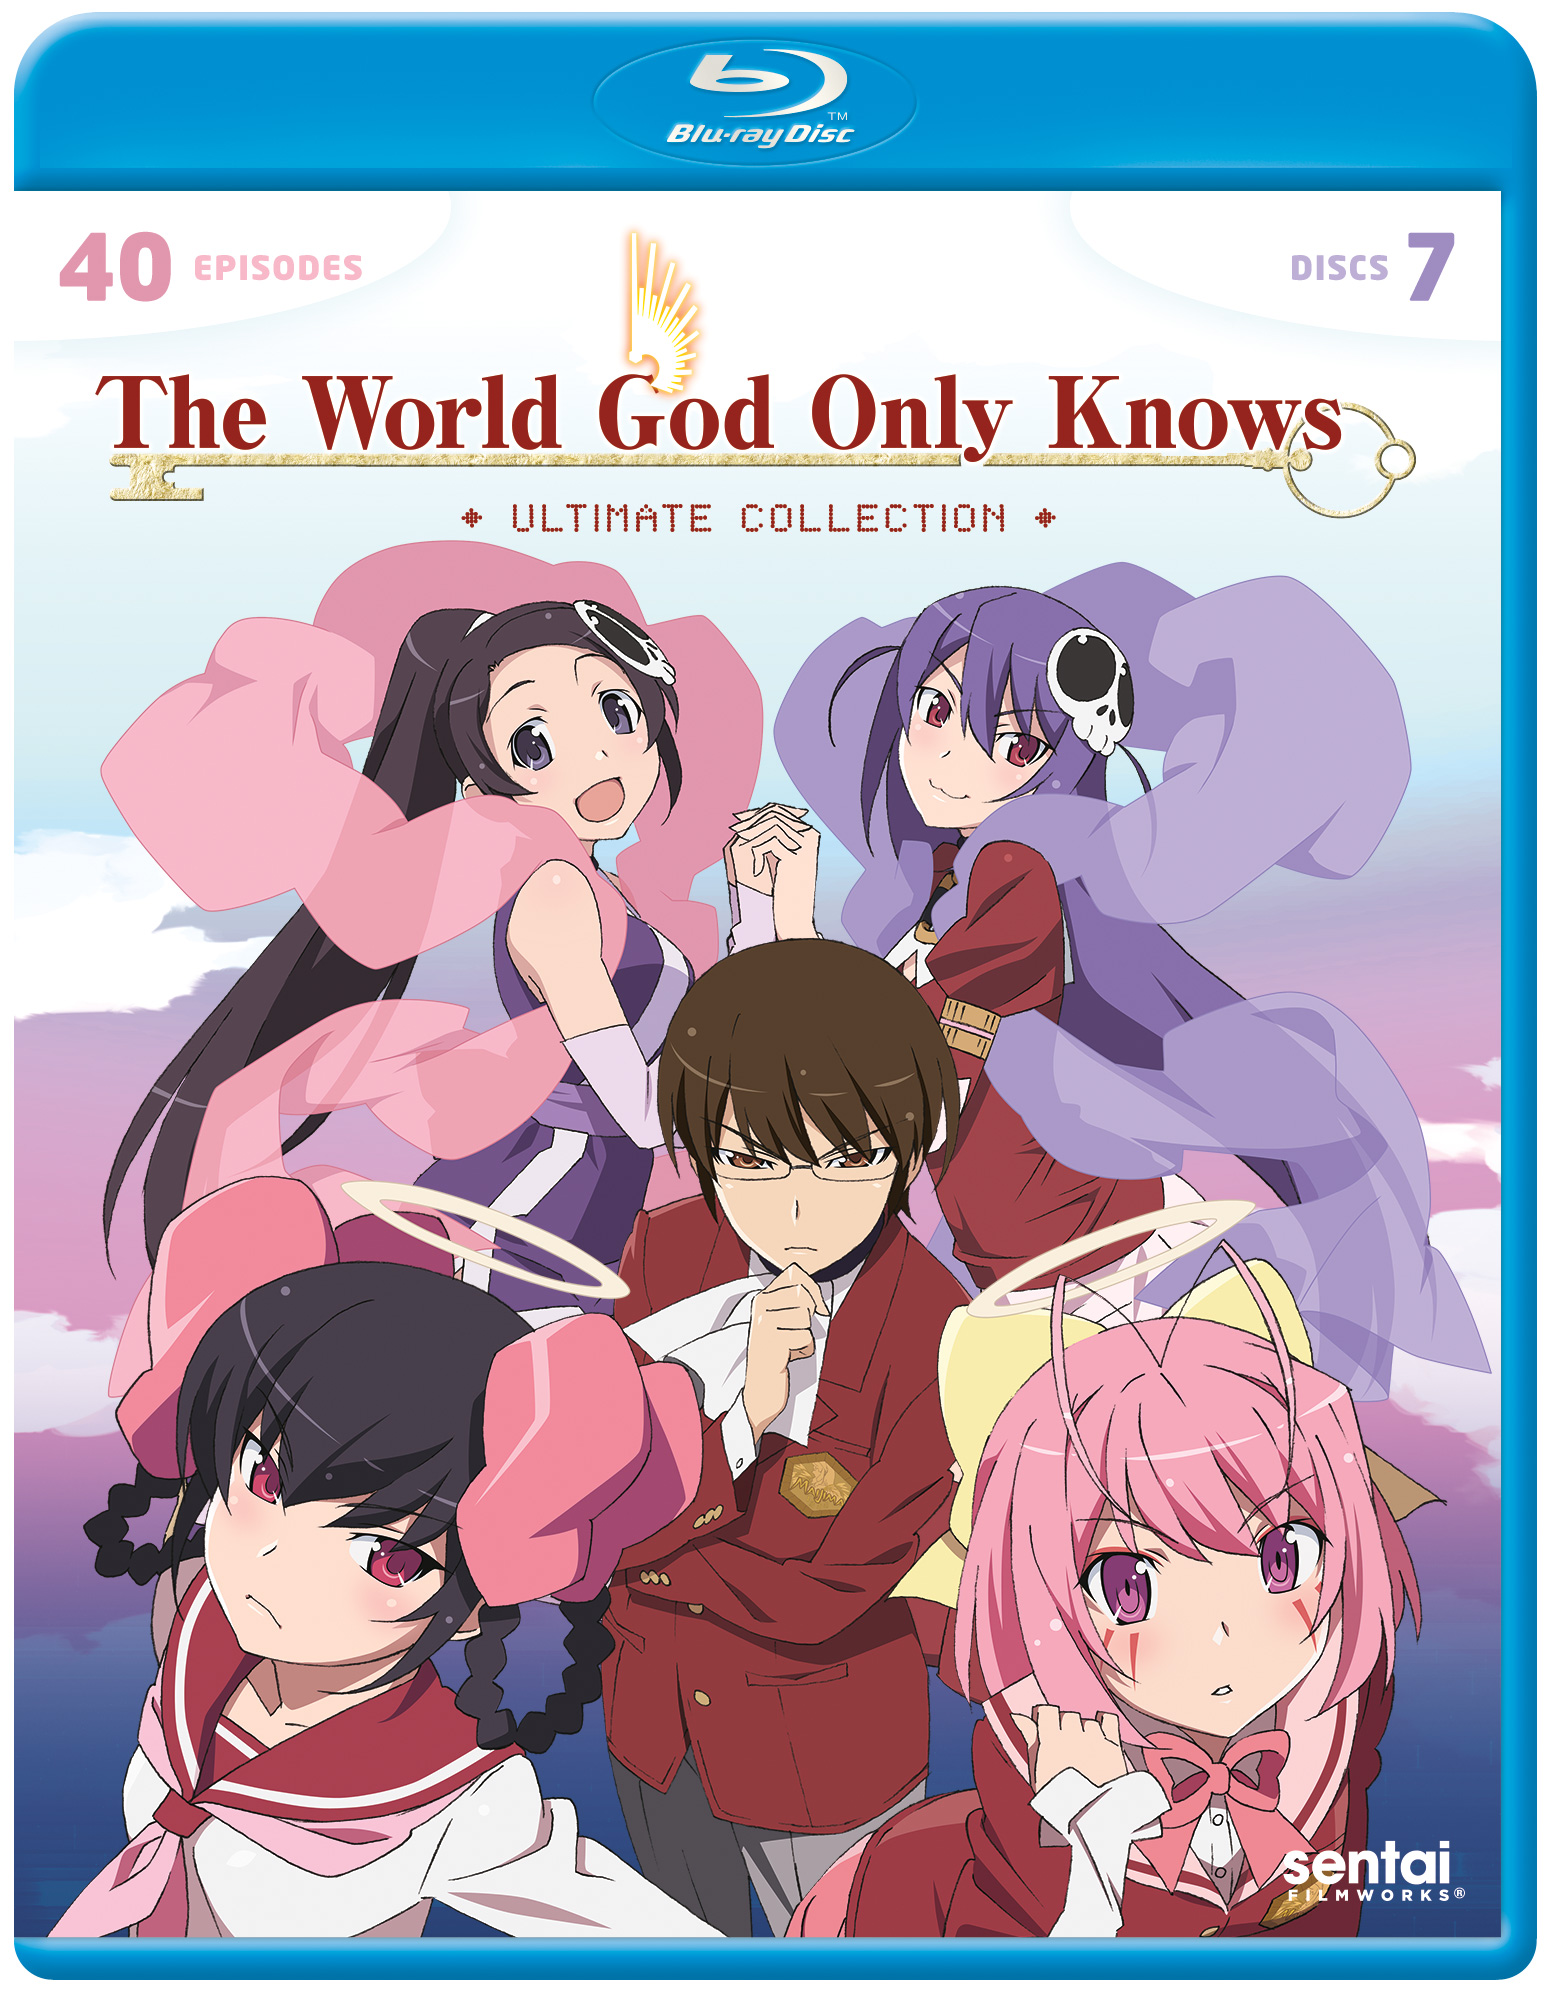 The World God Only Knows Ultimate Collection Blu-ray